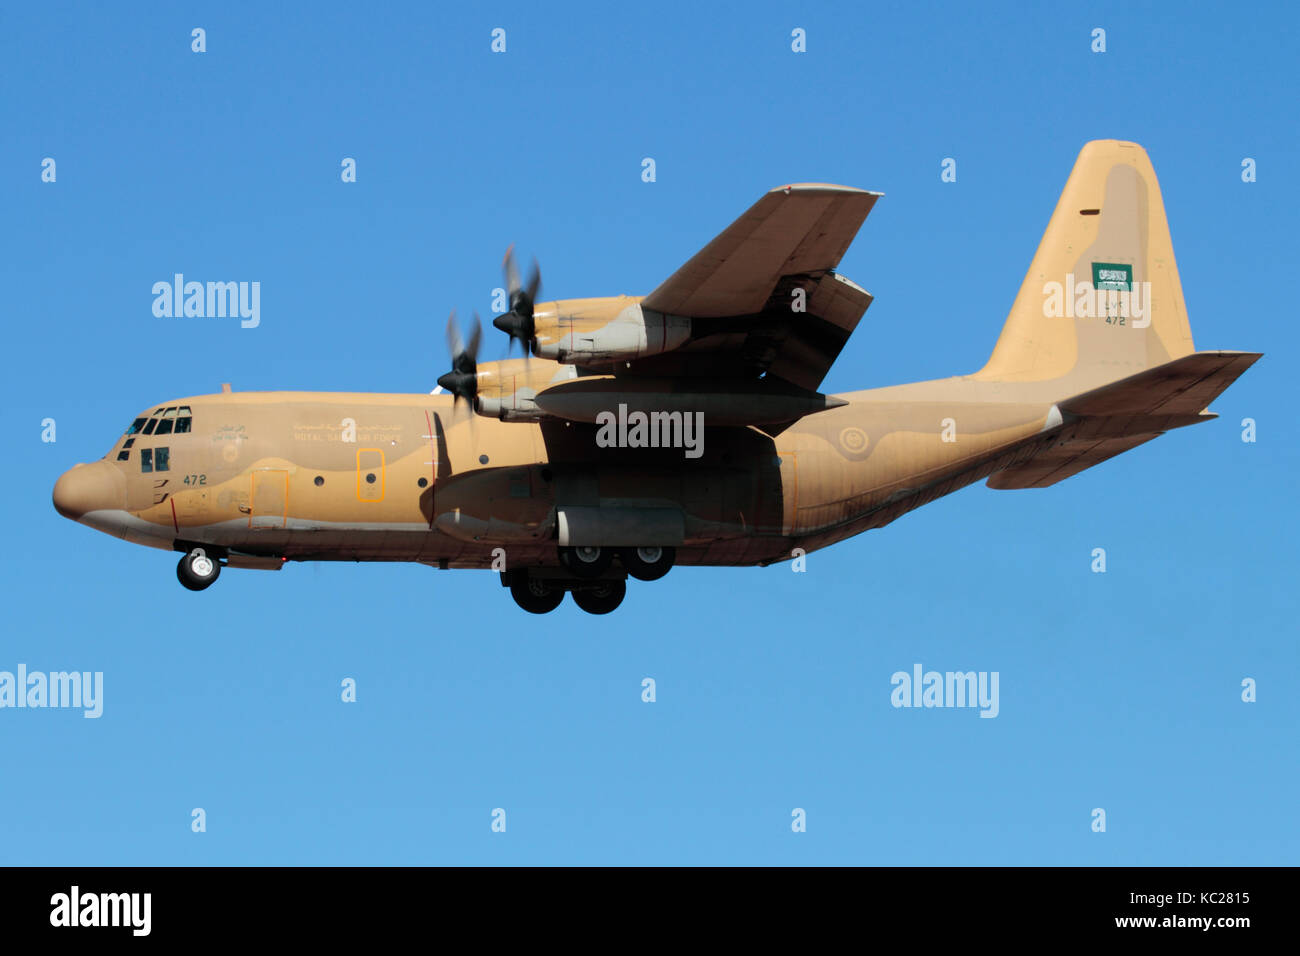 Military air transport. Royal Saudi Air Force Lockheed C-130H Hercules turboprop cargo plane on approach - Stock Image